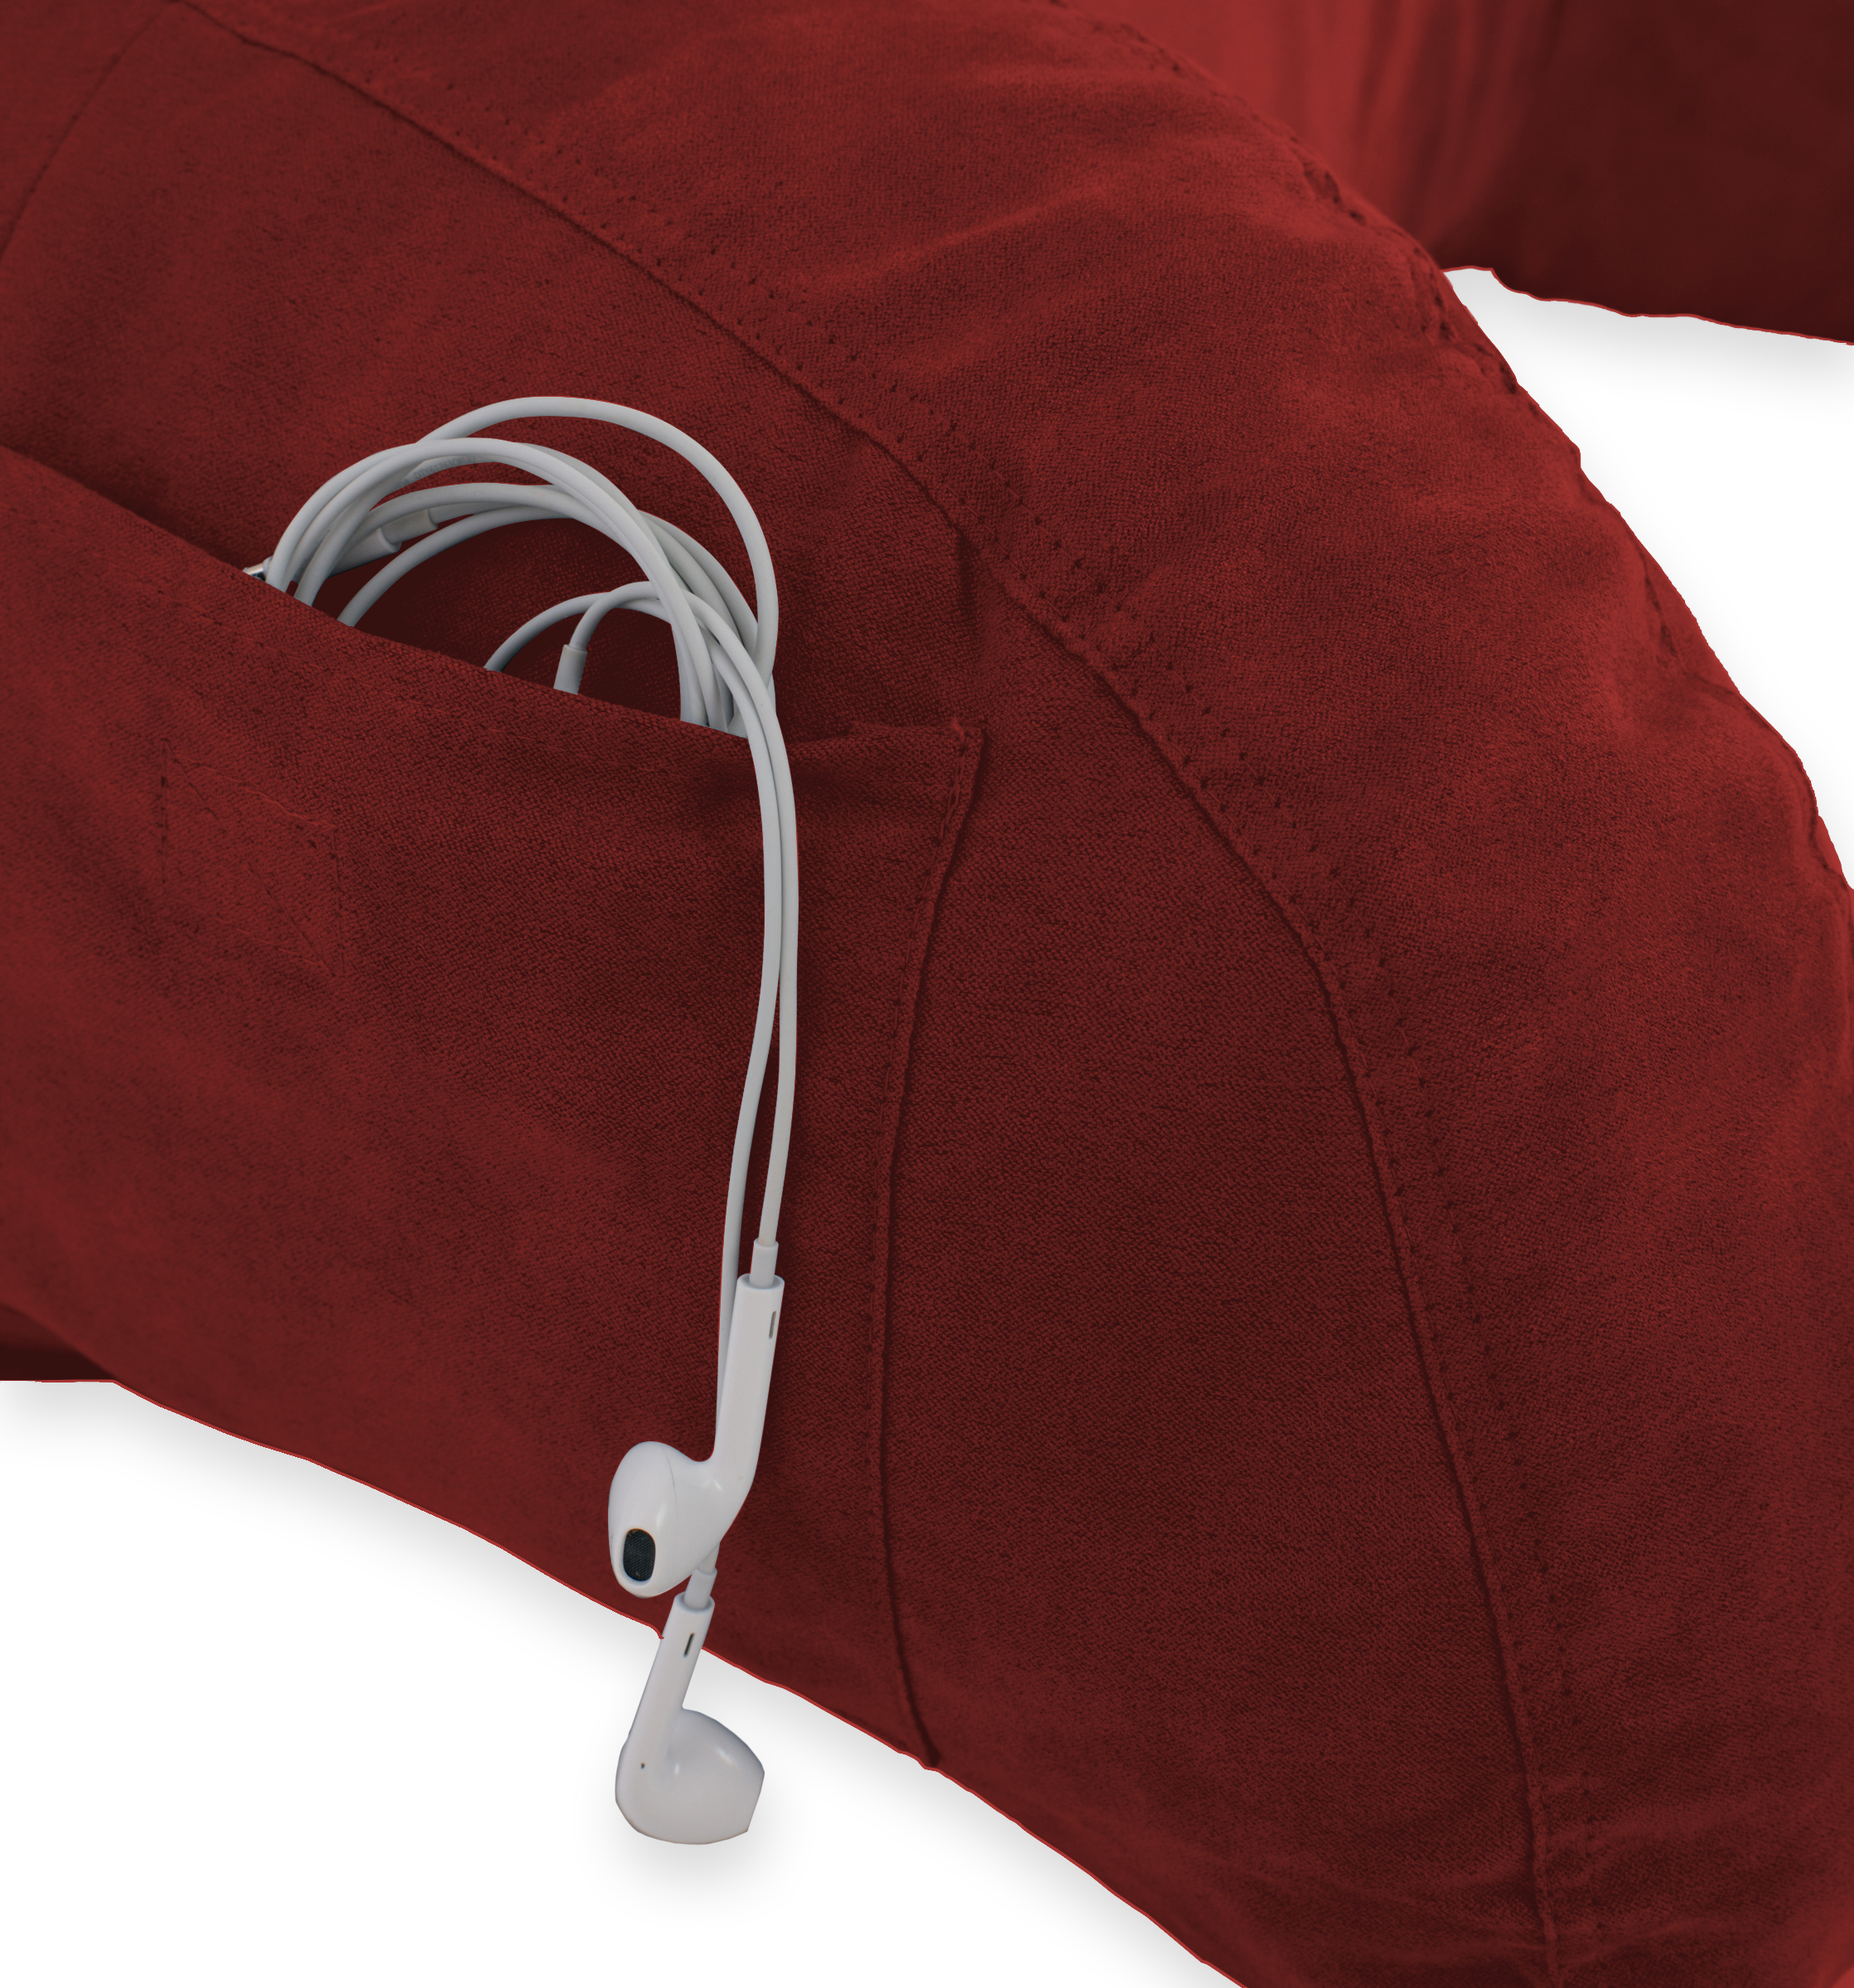 Microsuede-Bed-Rest-Reading-and-Bed-Rest-Lounger-Bed-Pillow thumbnail 41